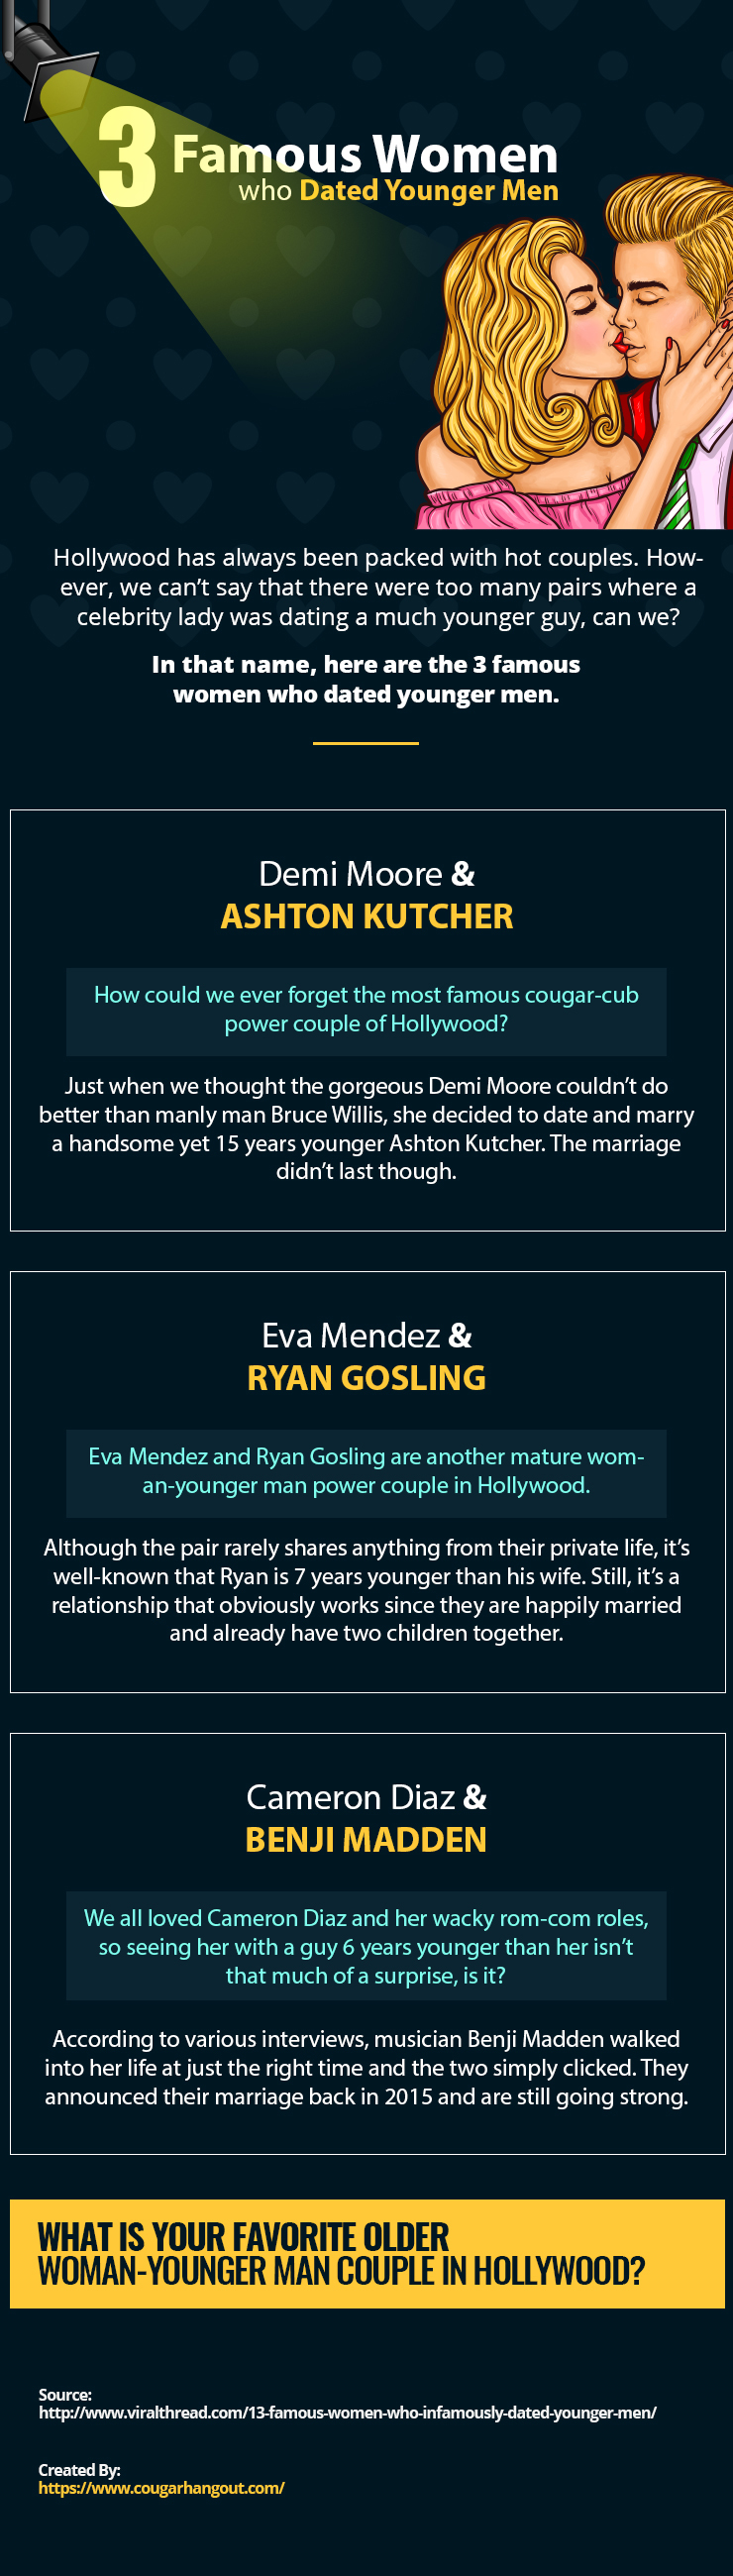 3 Famous Women who Dated Younger Men